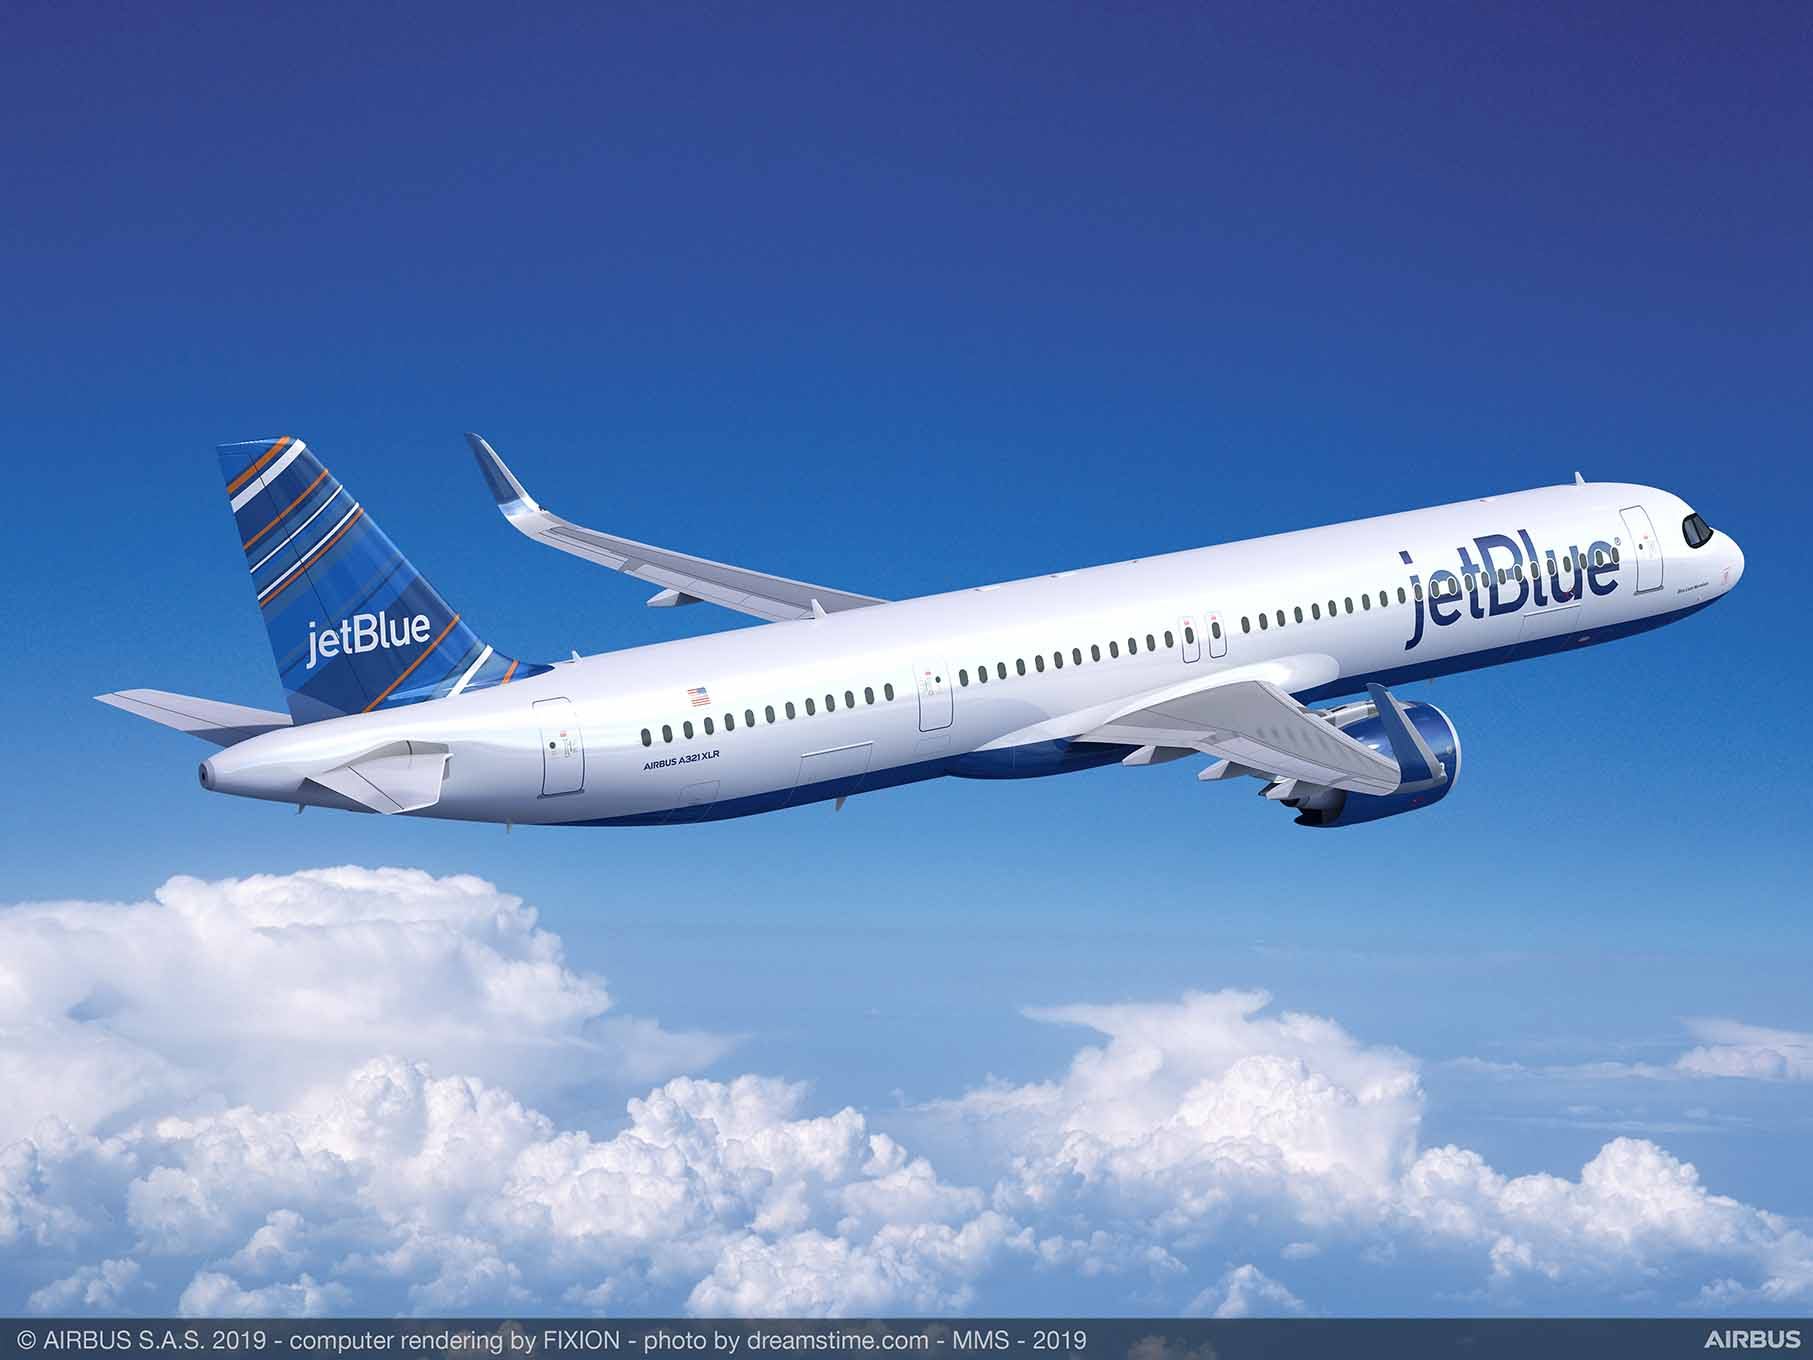 JetBlue remains tight-lipped about which London airport it'll fly to